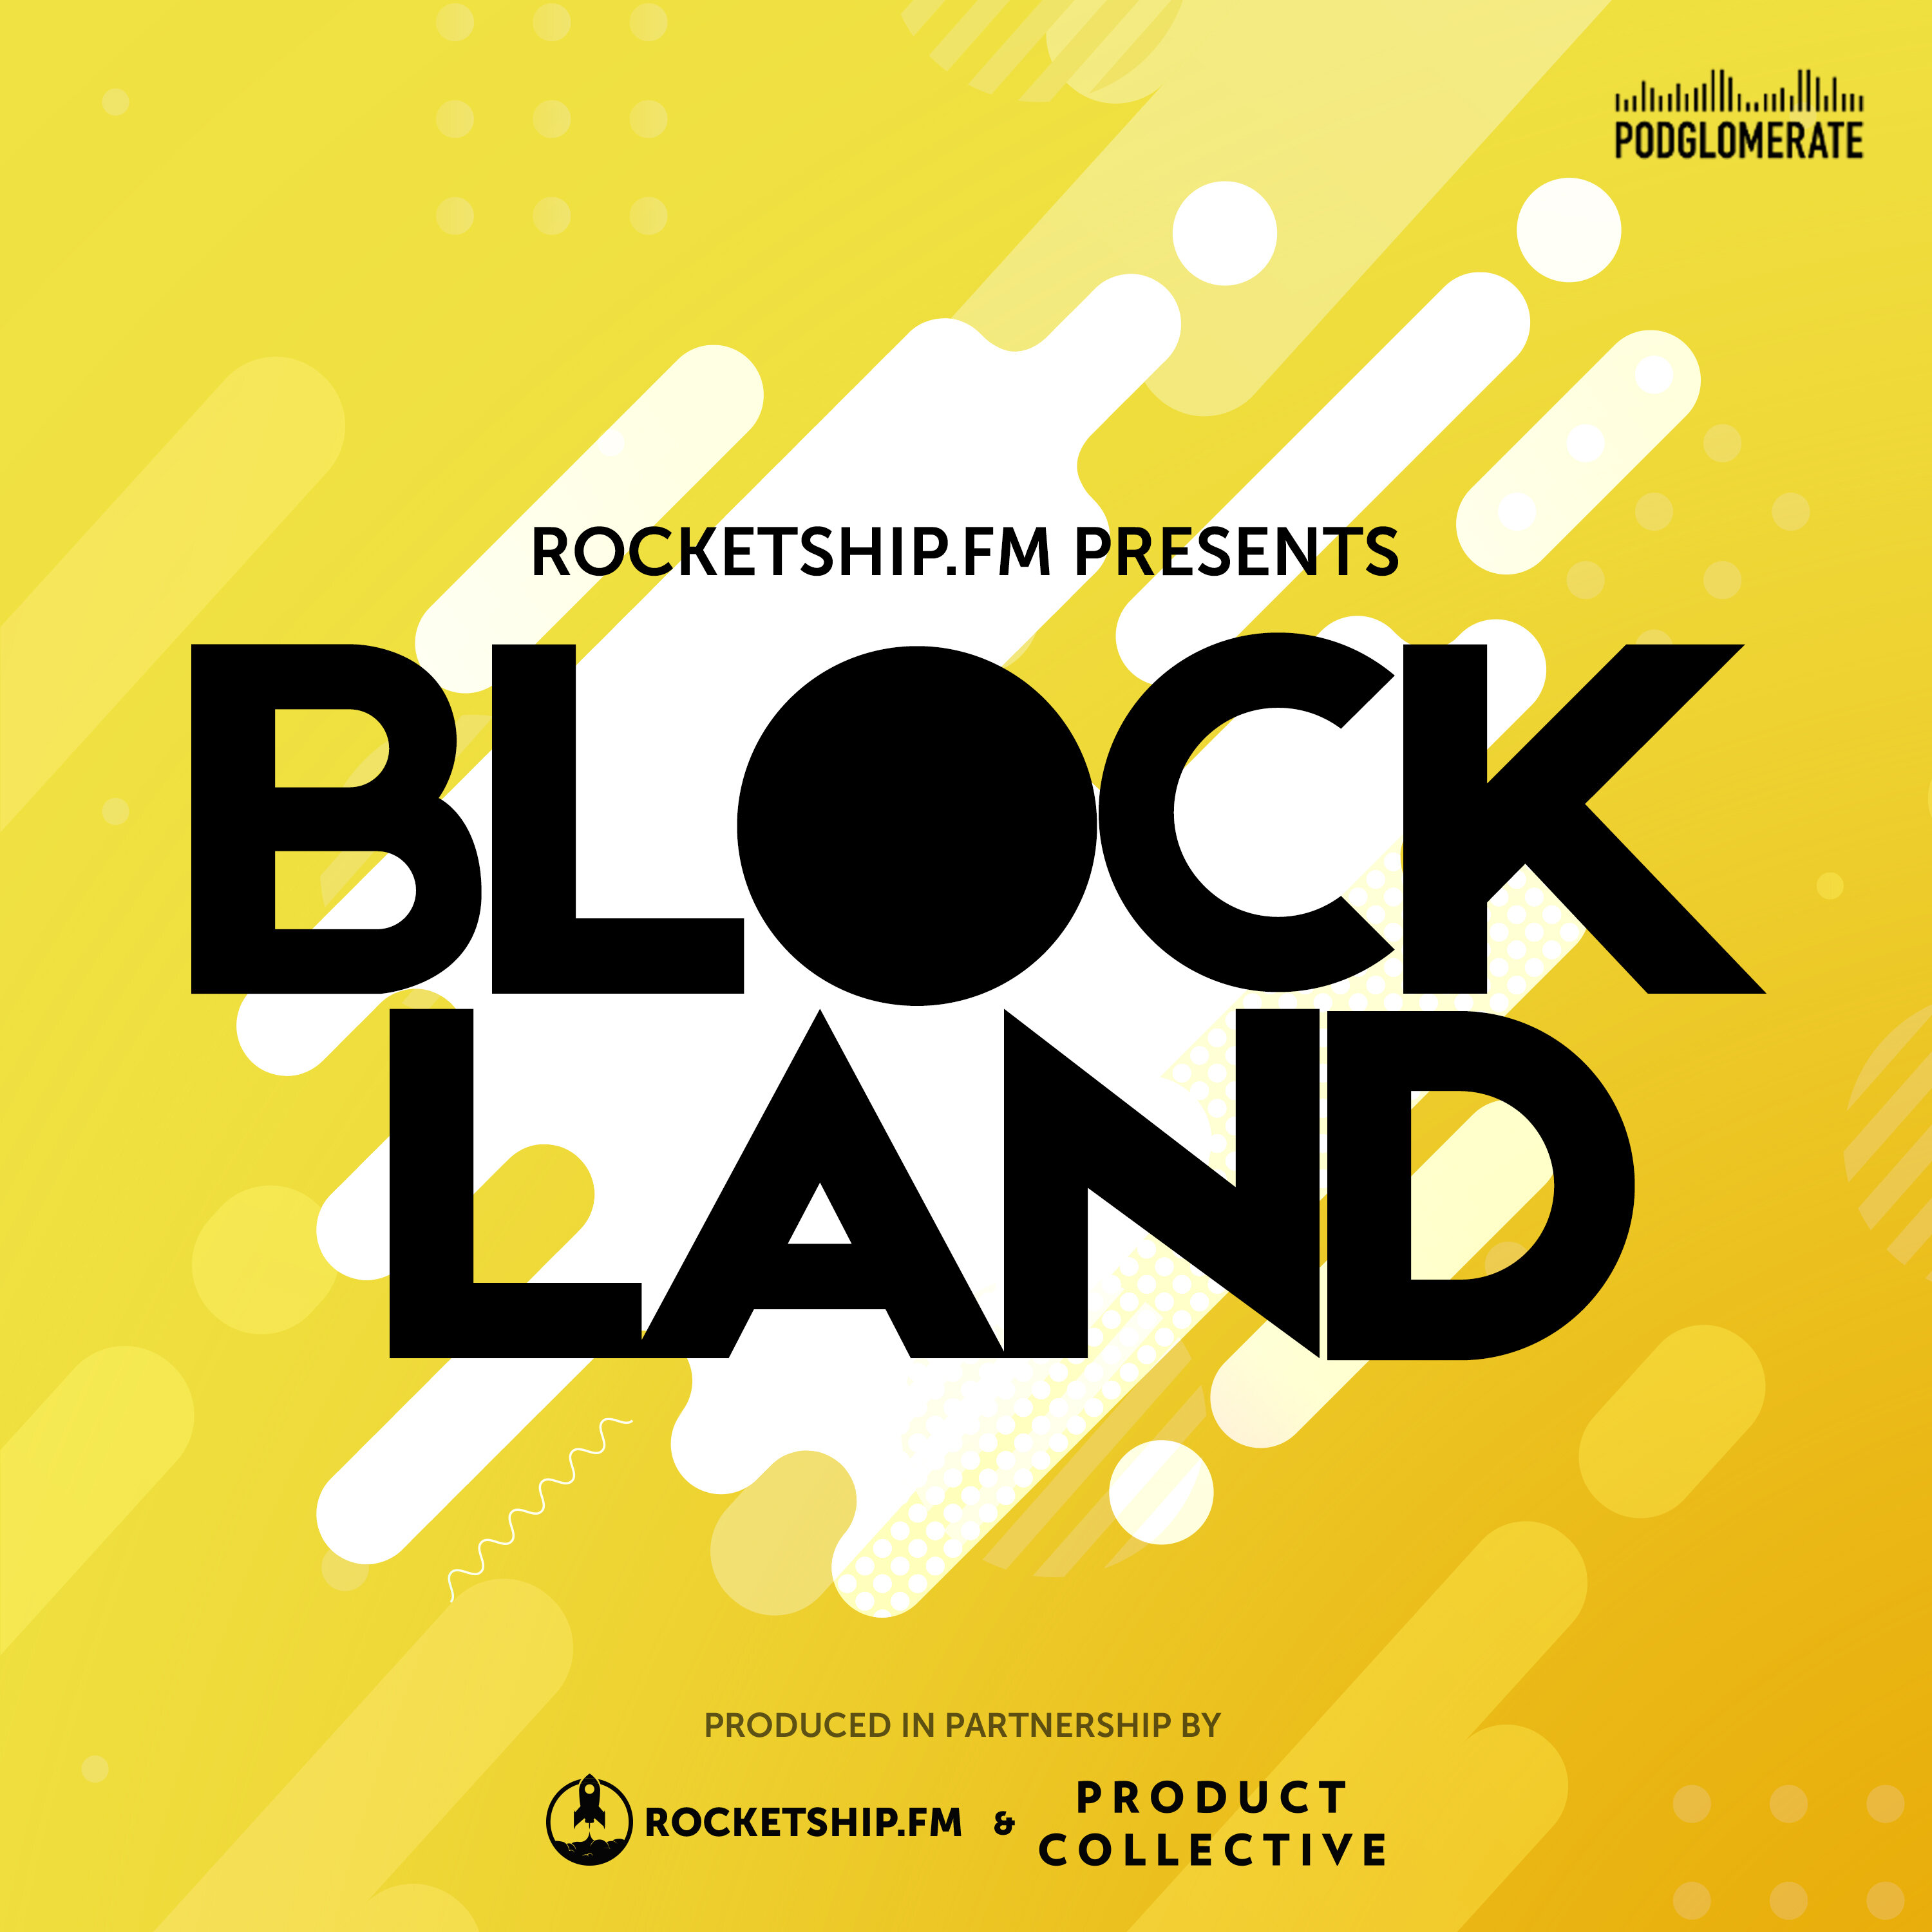 Blockland: The Blockland Conference